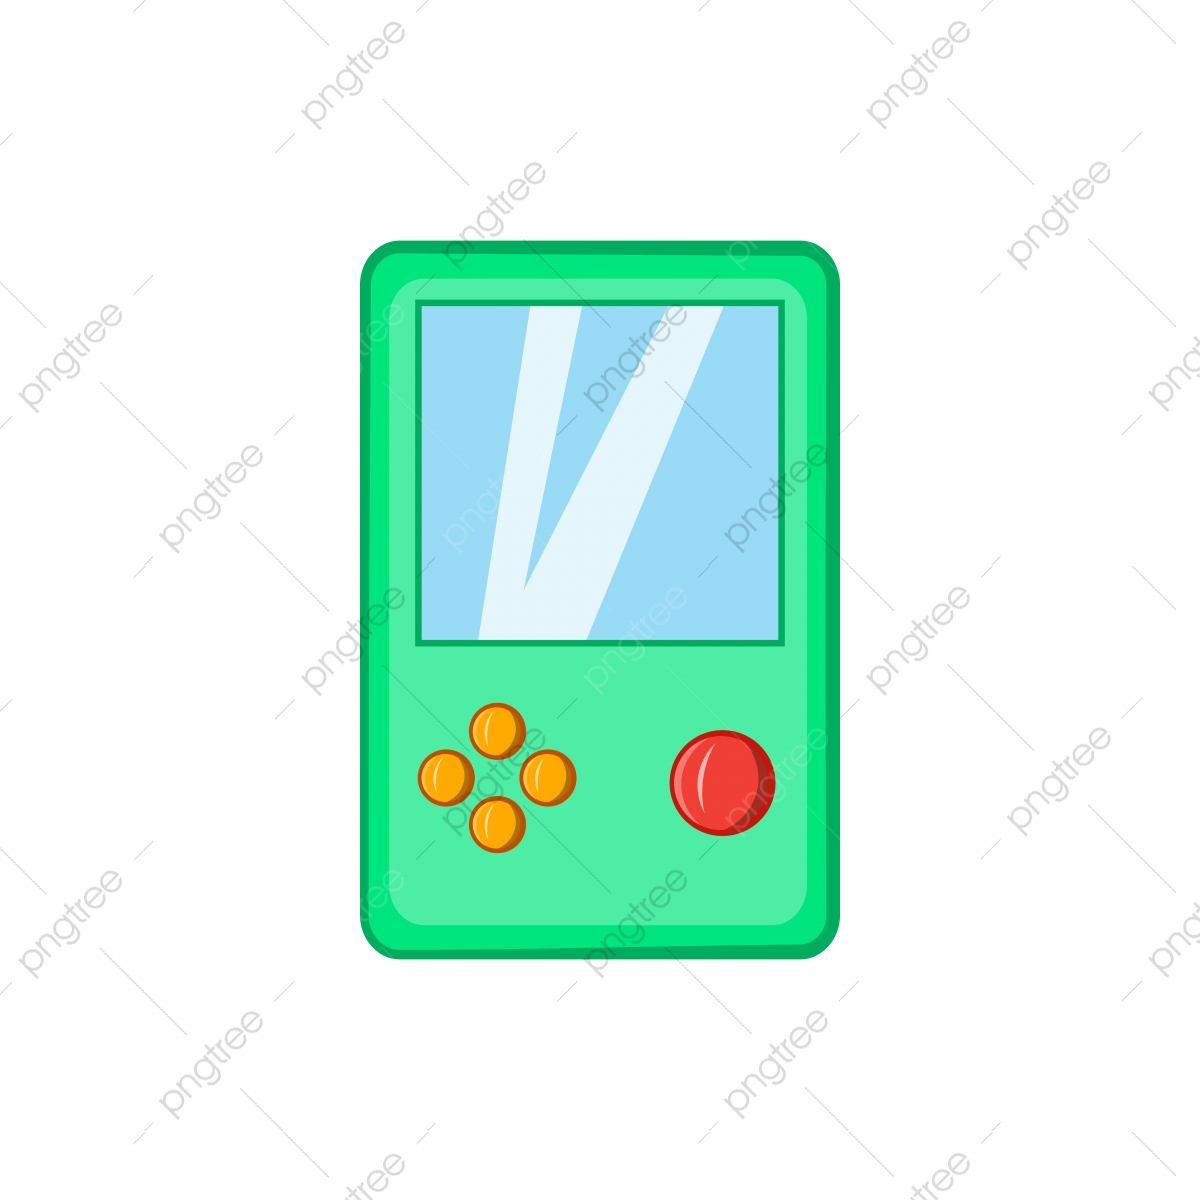 Tetris Icon Cartoon Style Style Icons Cartoon Icons Tetris Png And Vector With Transparent Background For Free Download